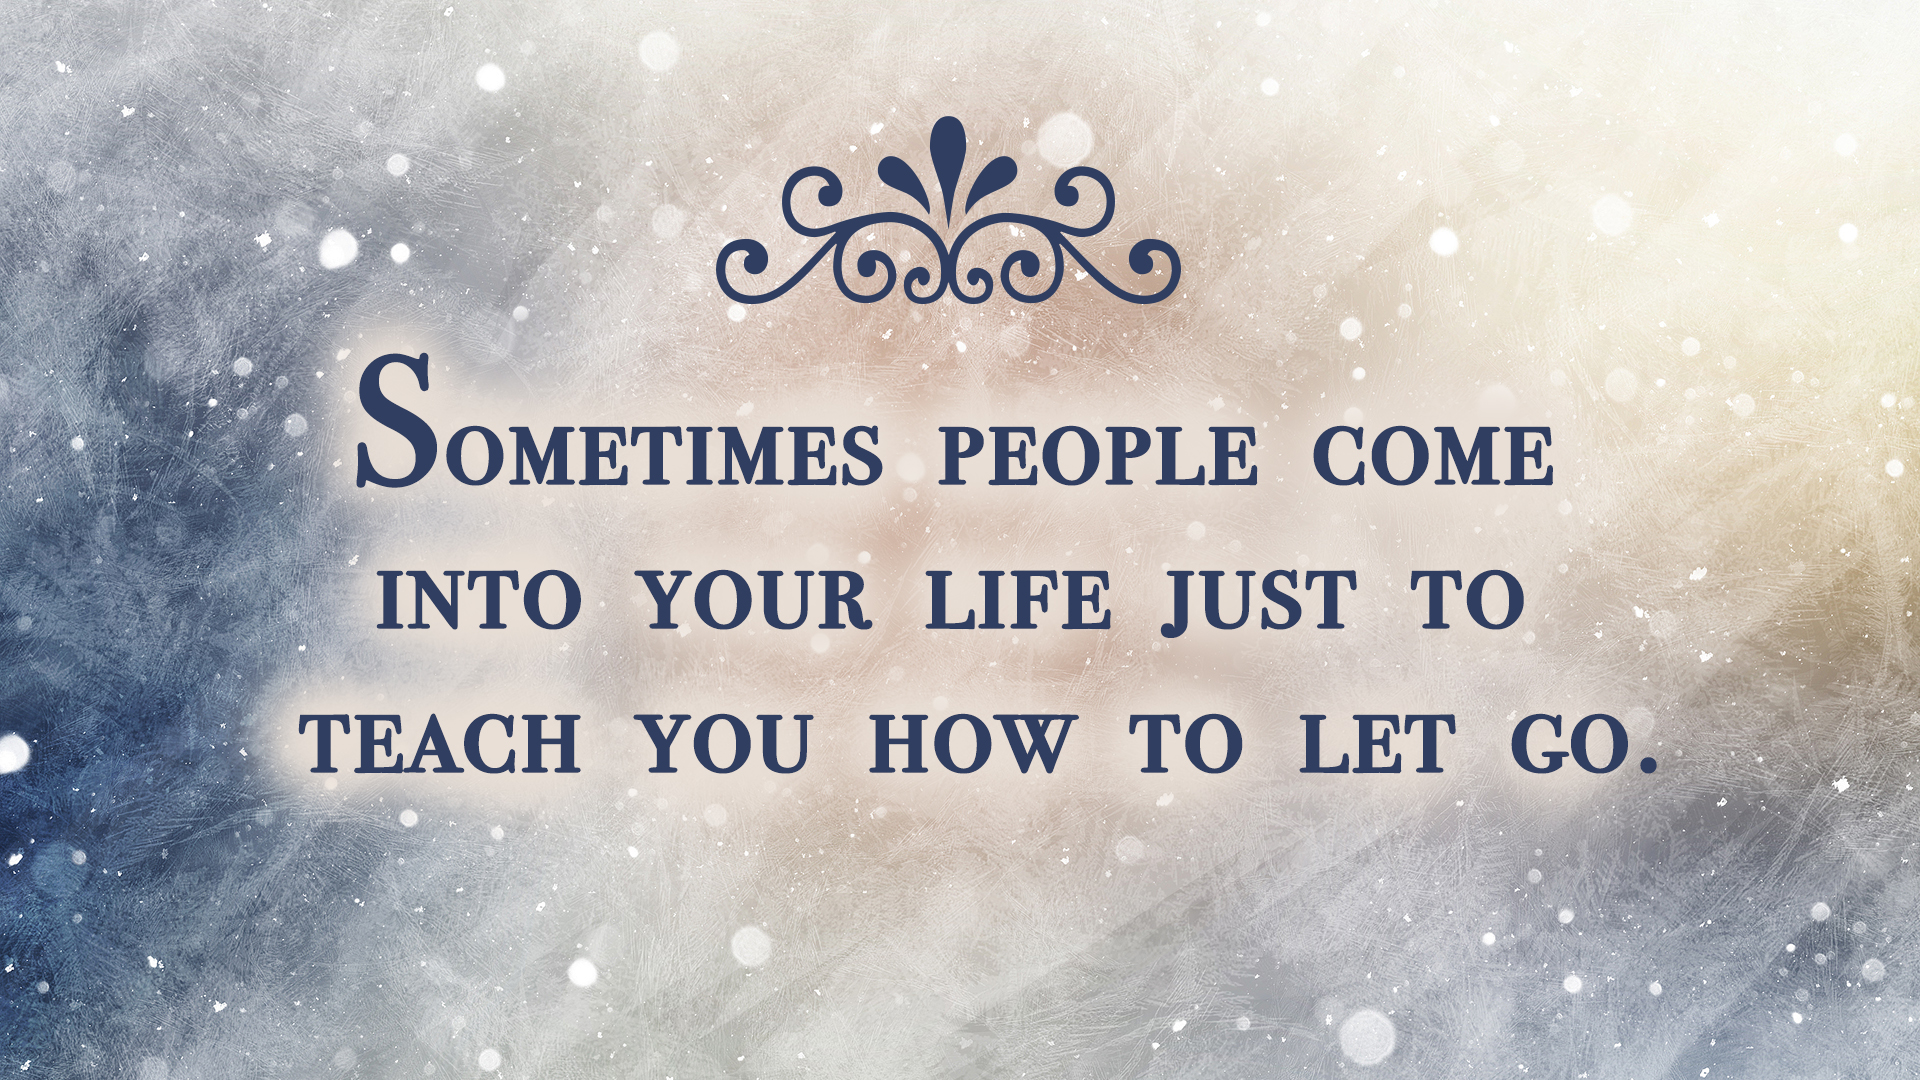 sometimes people come into your life just to teach you how to let go - Letting Go Quotes